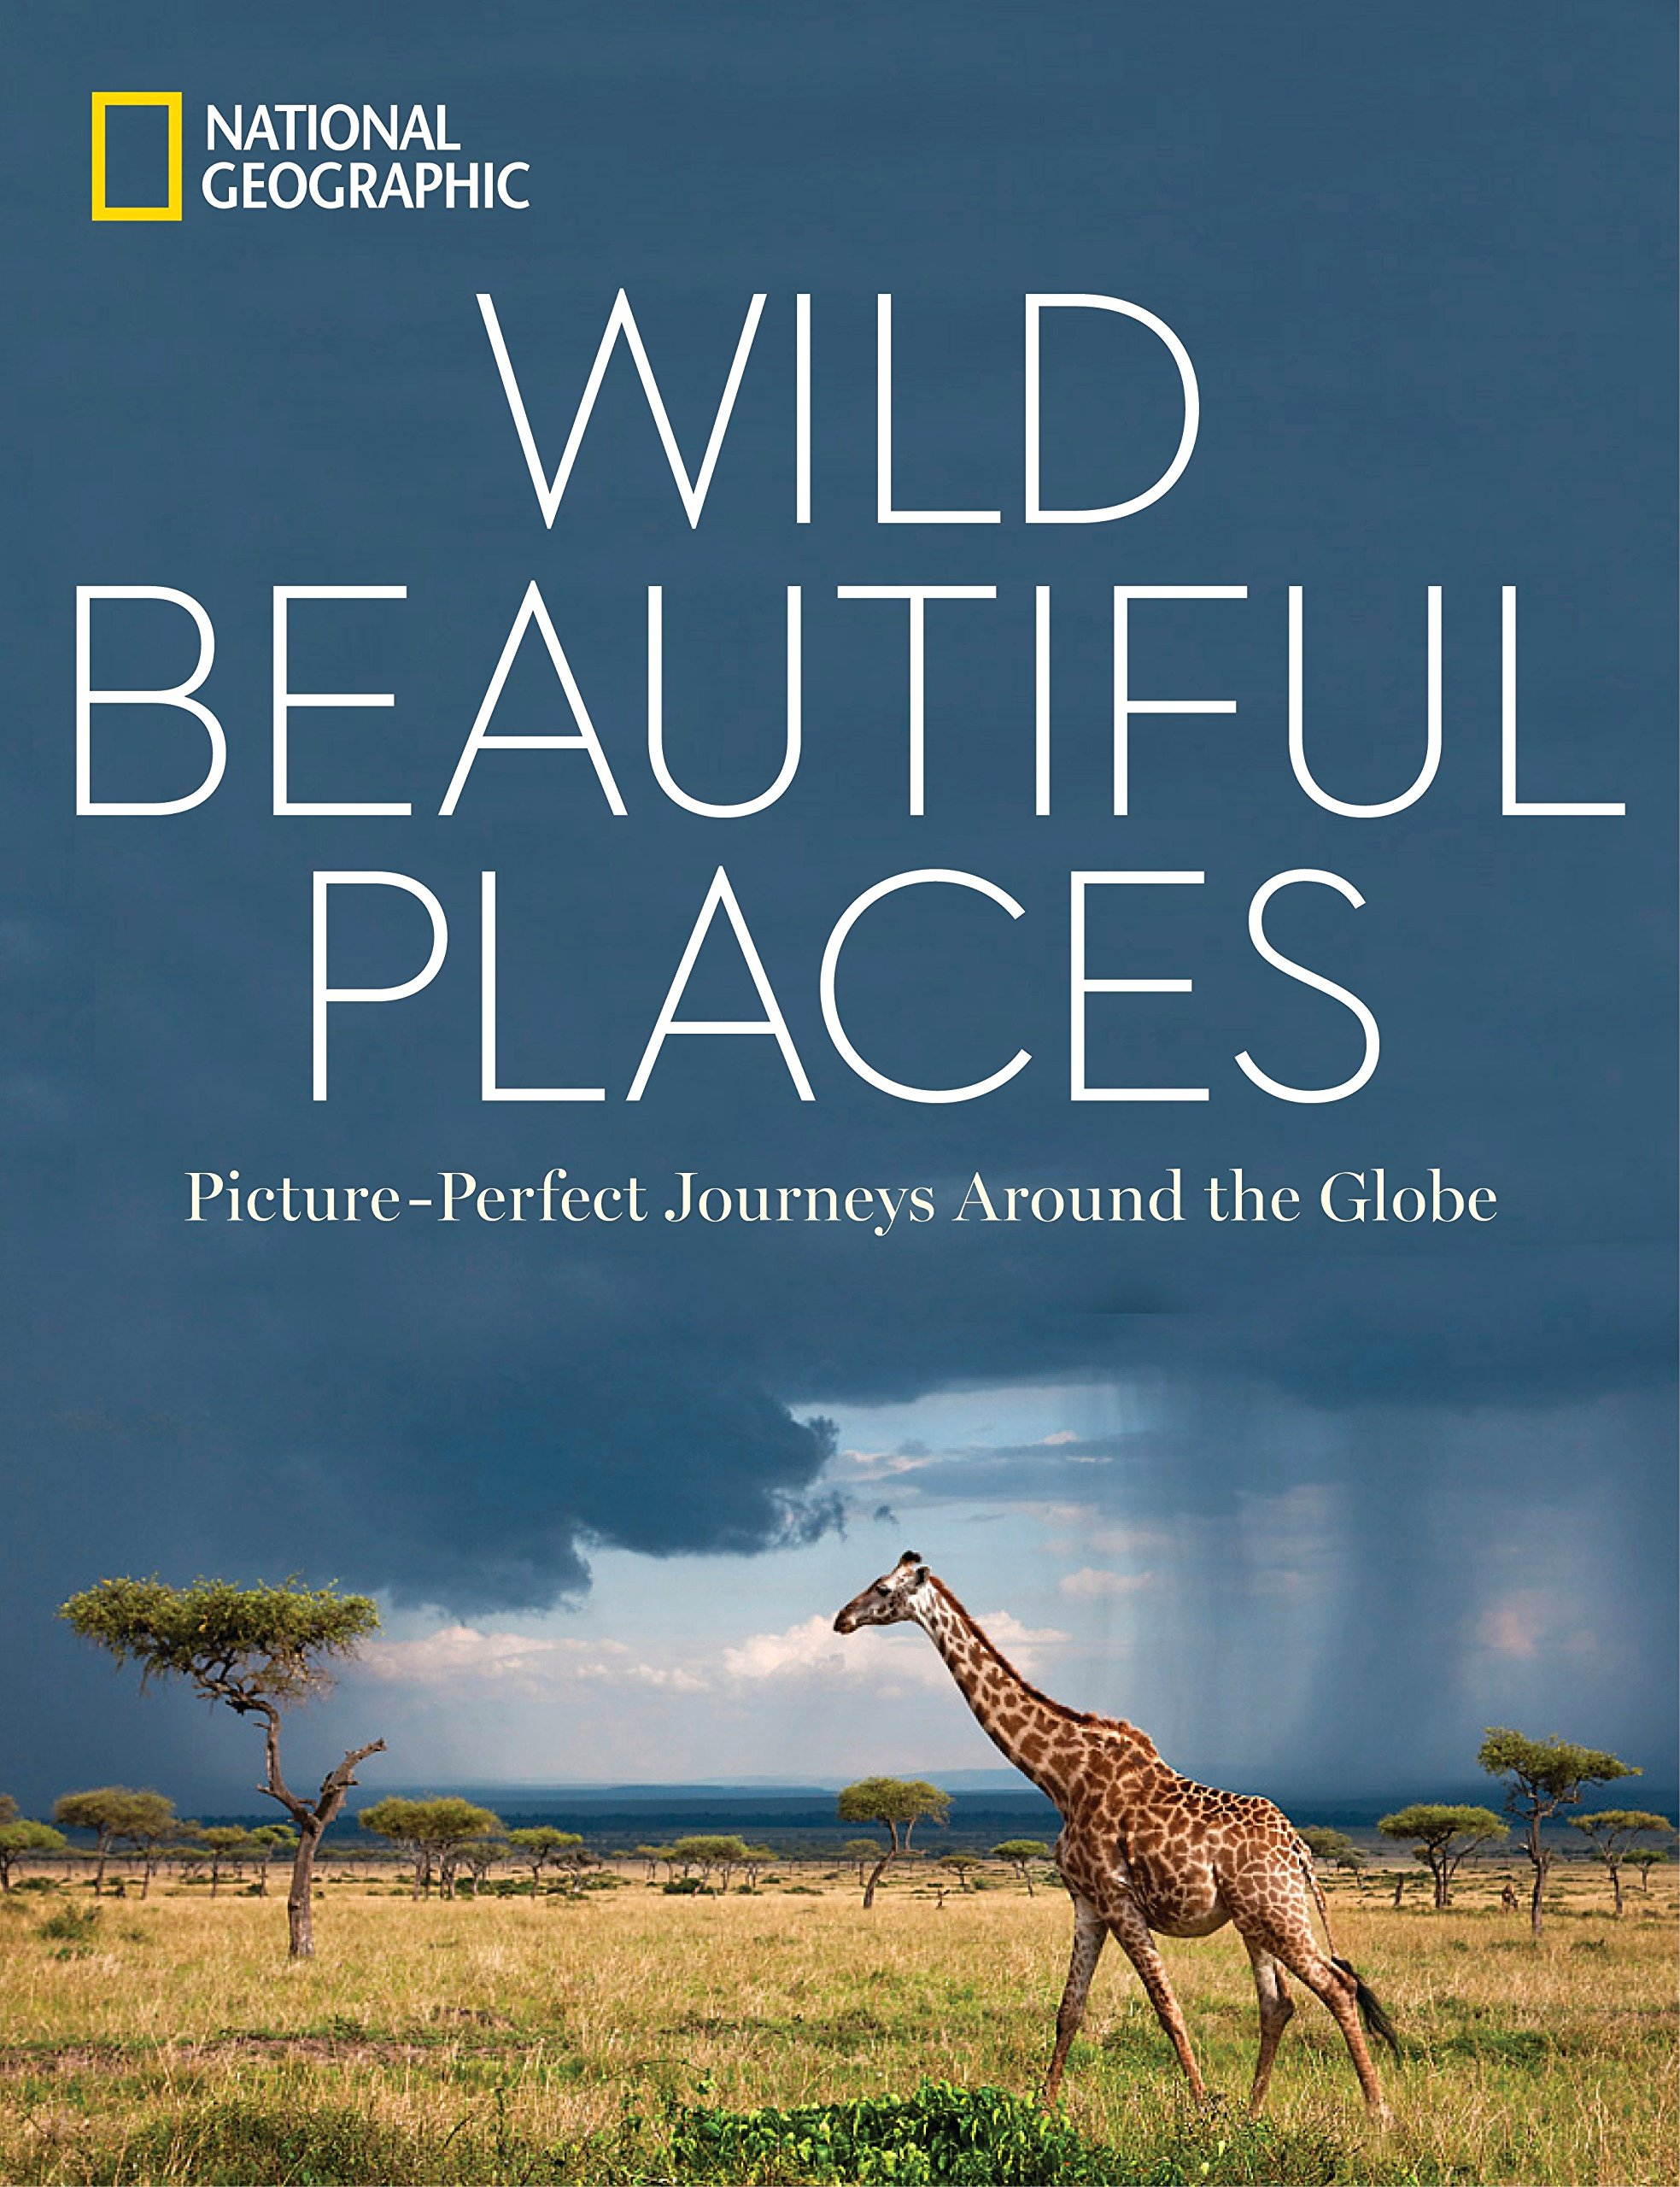 Wild, Beautiful Places: Picture-Perfect Journeys Around the Globe by National Geographic Society